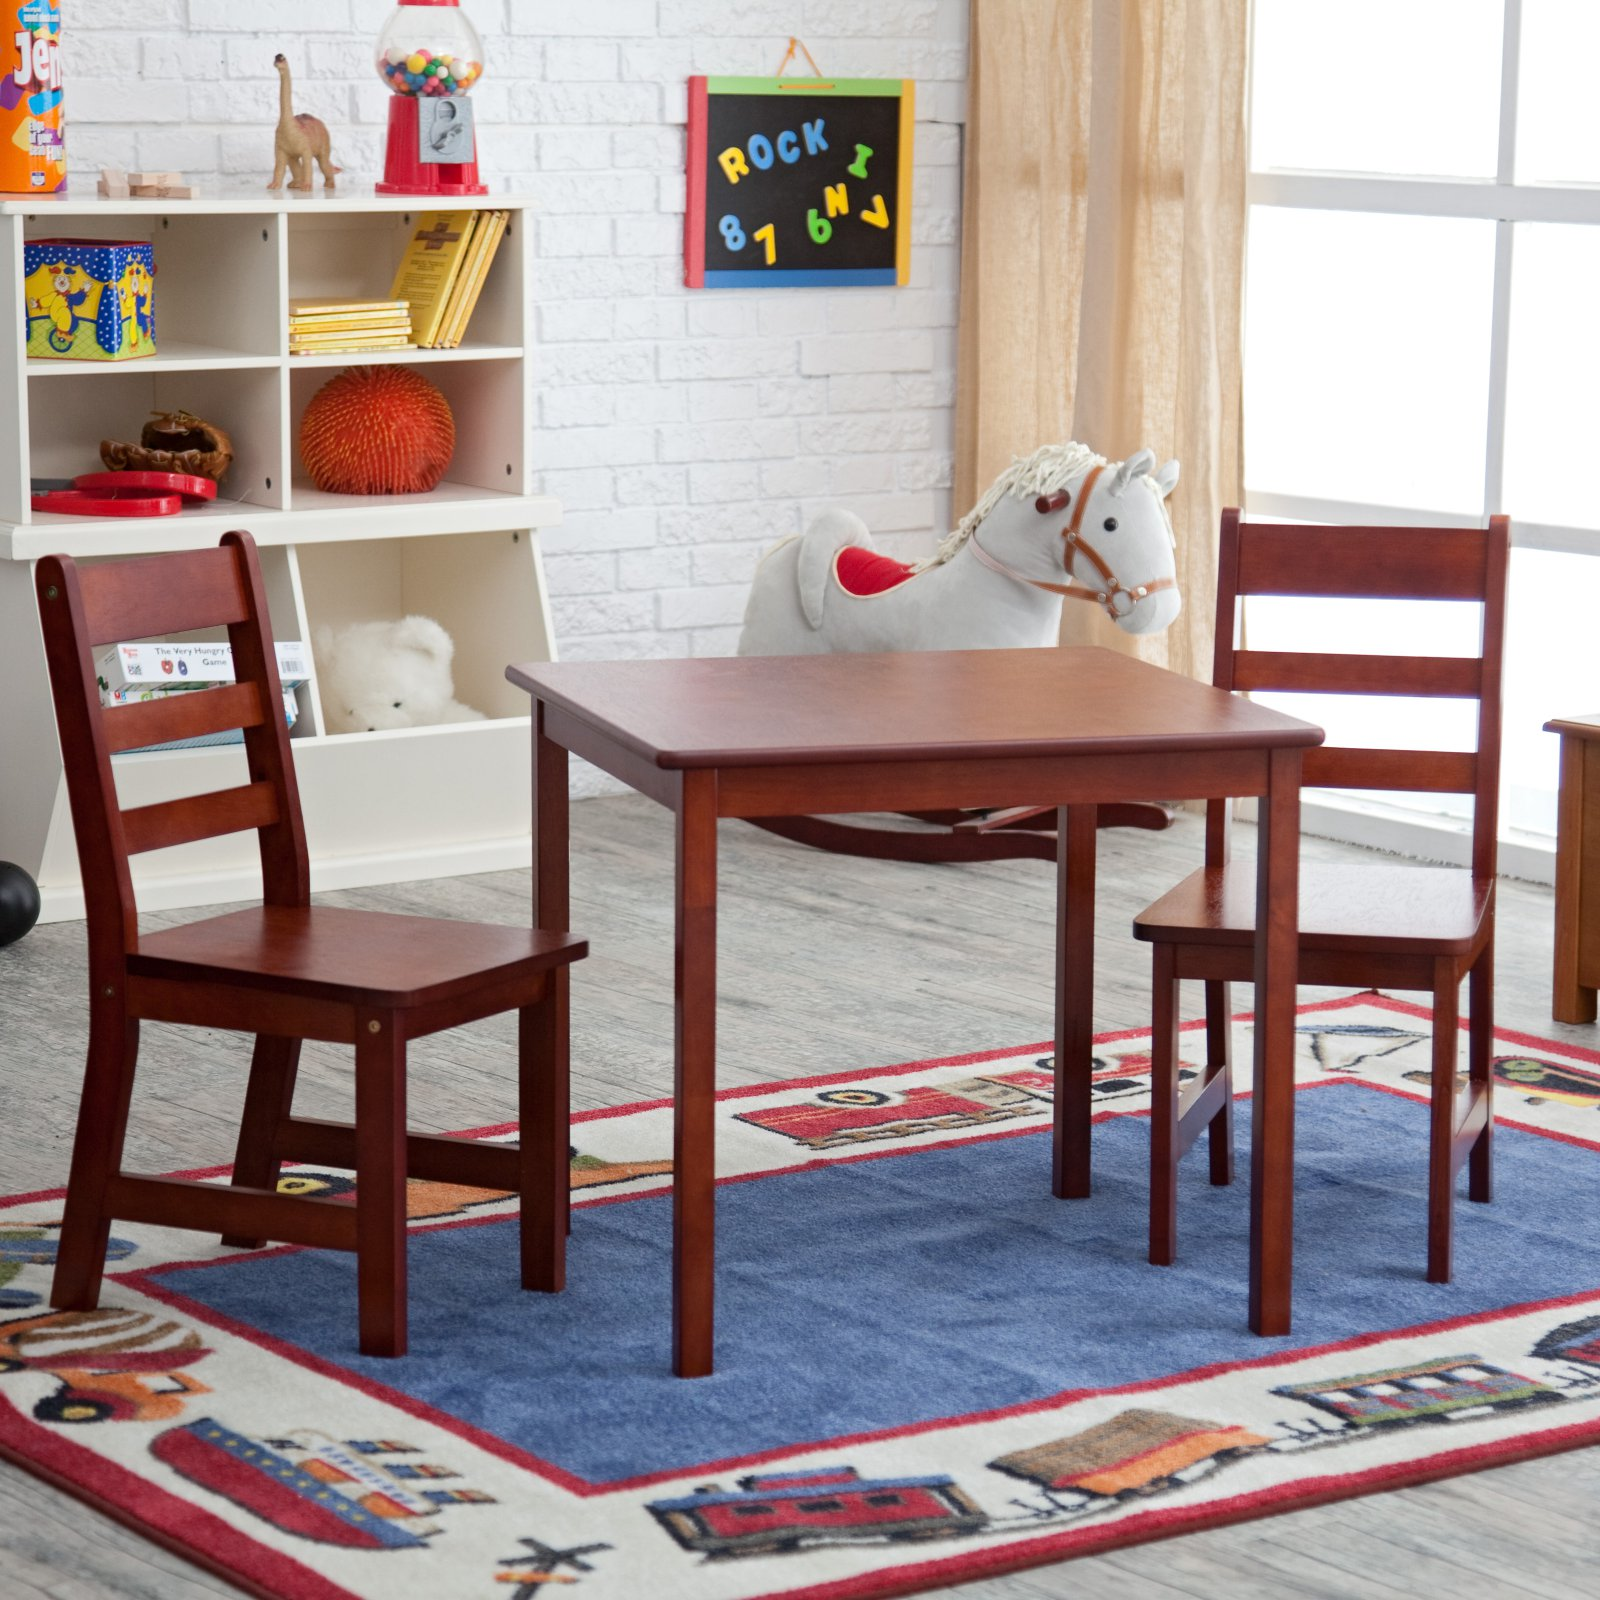 Lipper Child\'s Square Table & Chairs 3-Piece Set, Multiple Colors ...